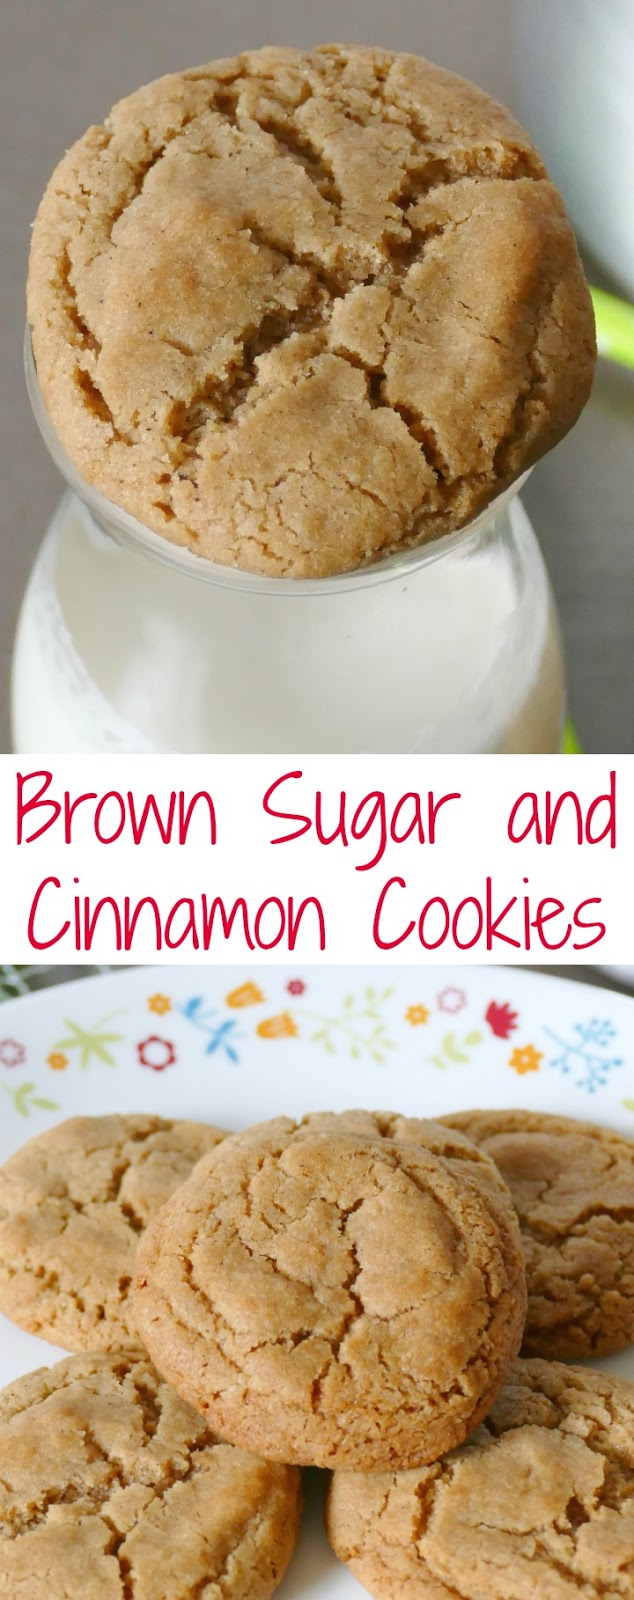 Brown Sugar and Cinnamon Cookies